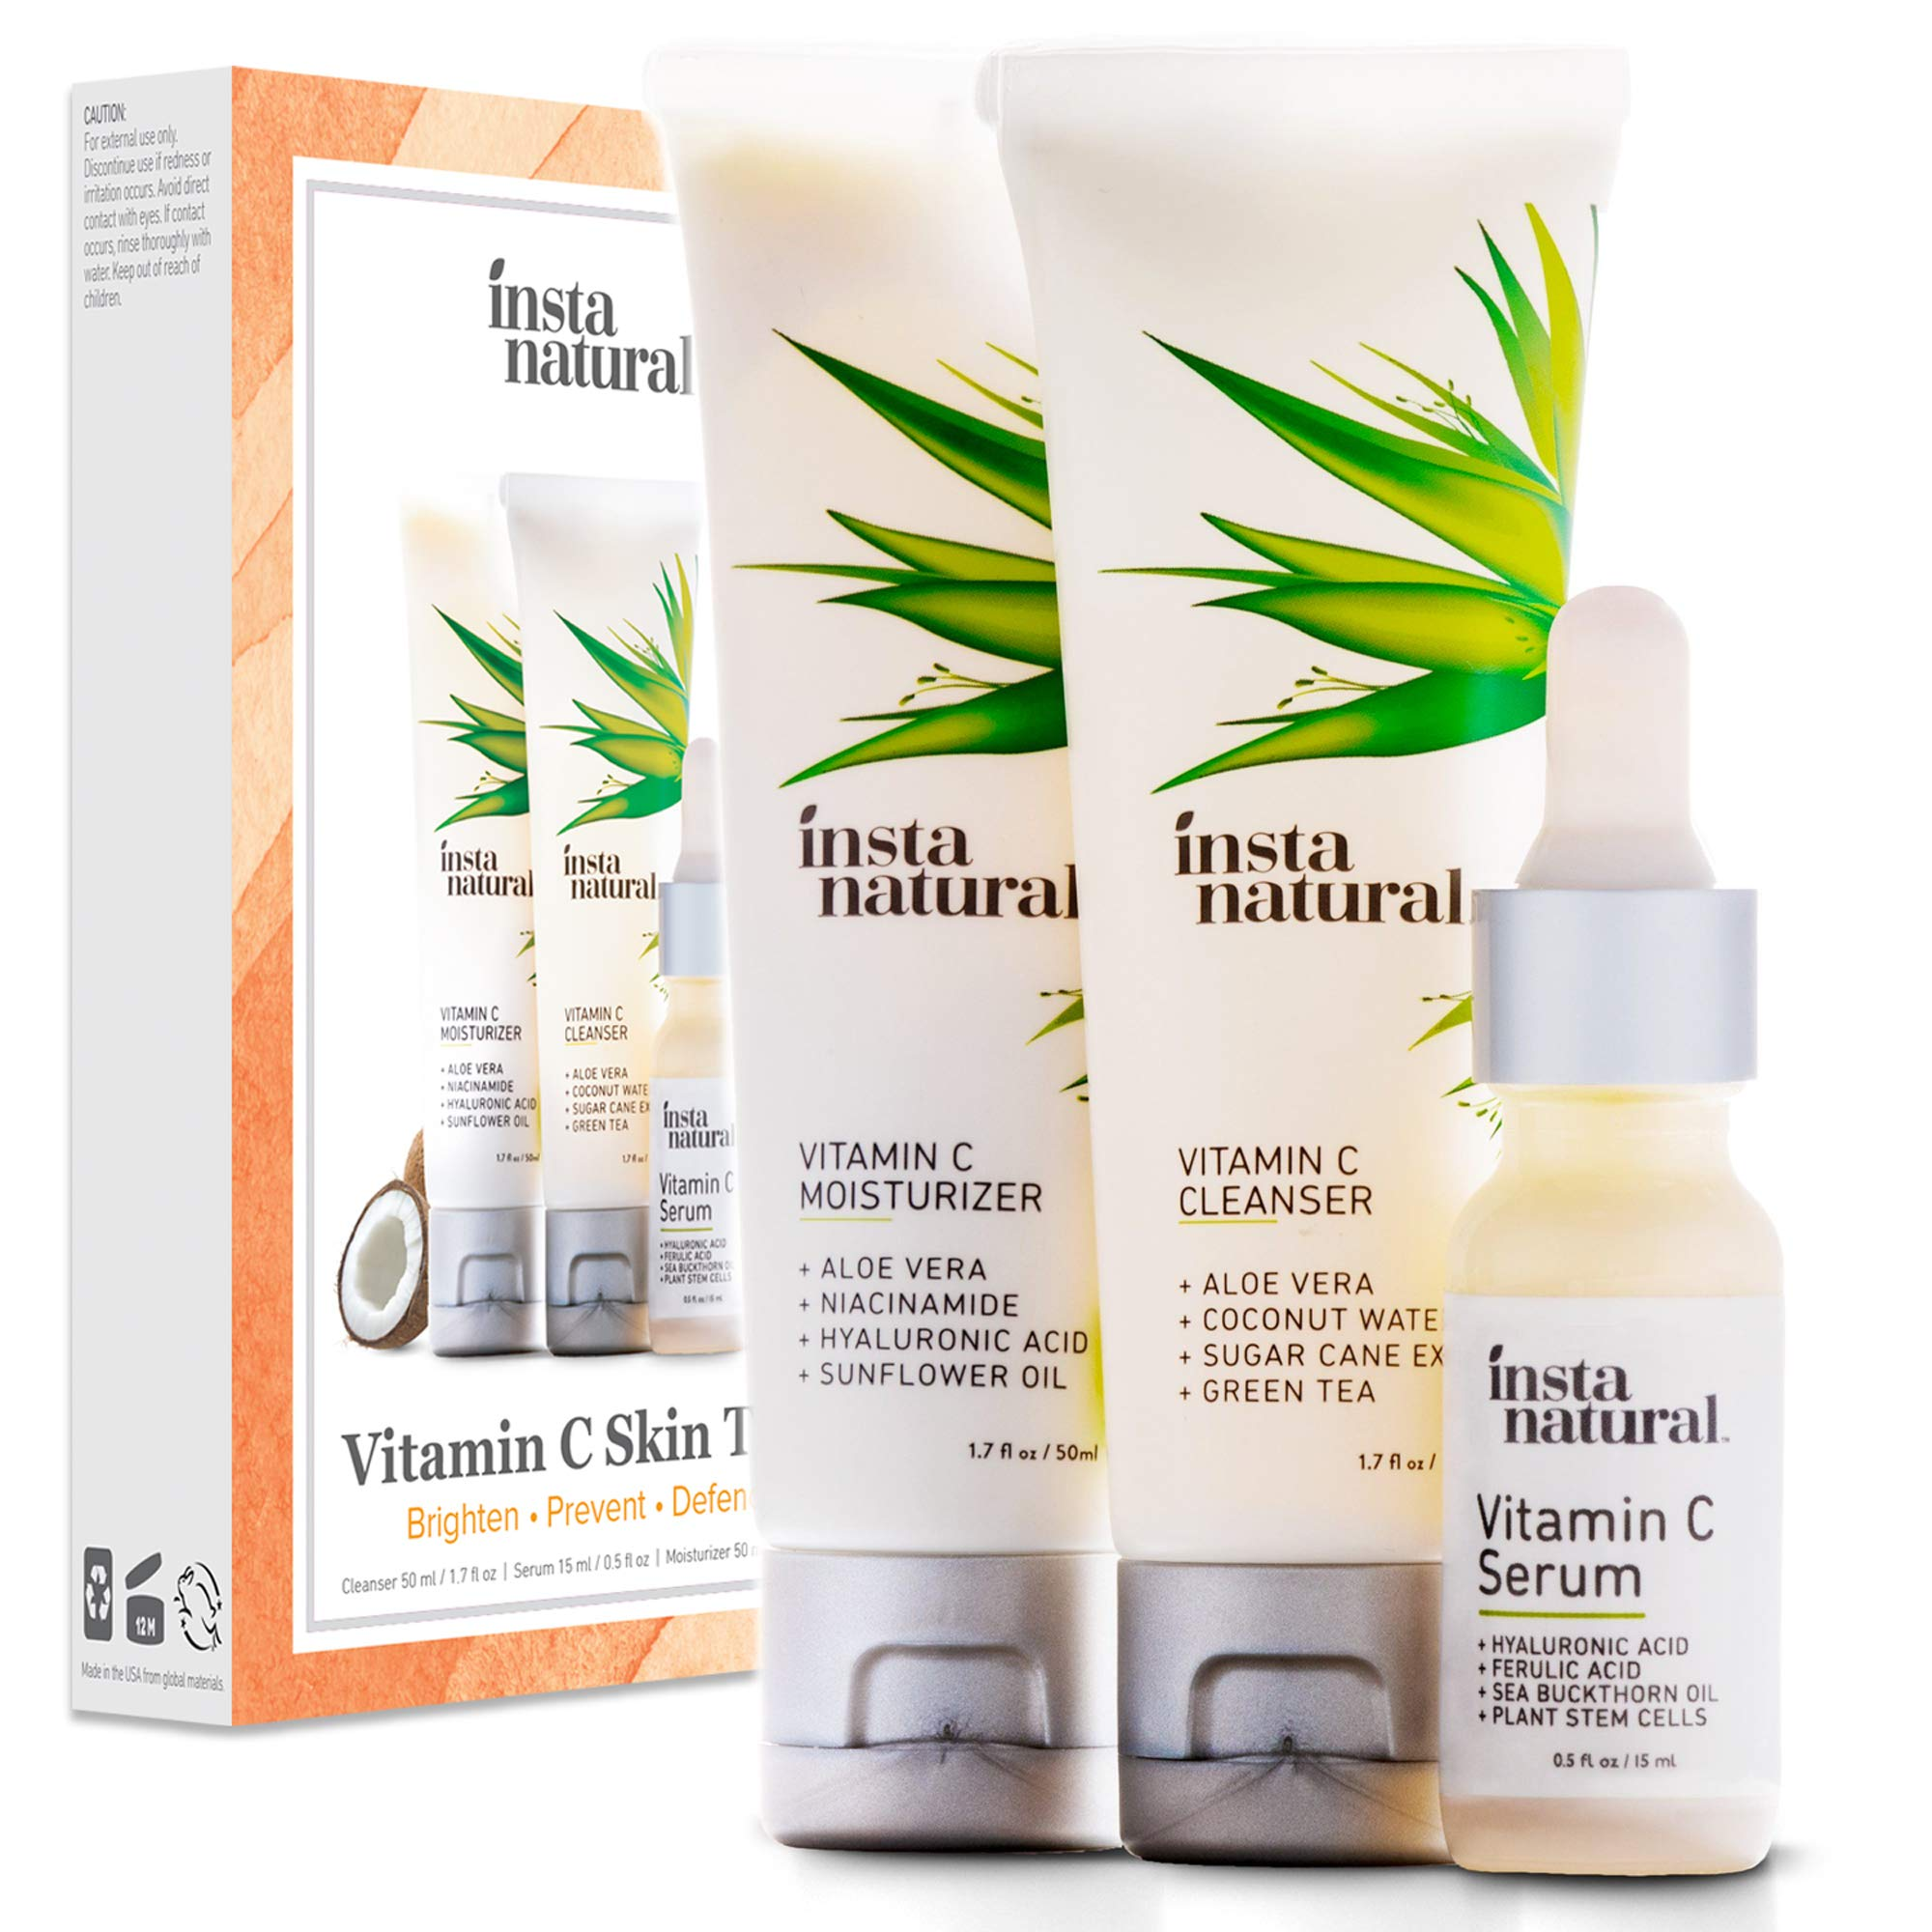 Vitamin C Skin Trio Bundle - 30 Day Starter Kit - Cleanser, Serum, Moisturizer Combo - Natural & Organic Anti Aging Face Treatment - Reduces Wrinkles, Dark Circles & Boost Collagen - InstaNatural by InstaNatural